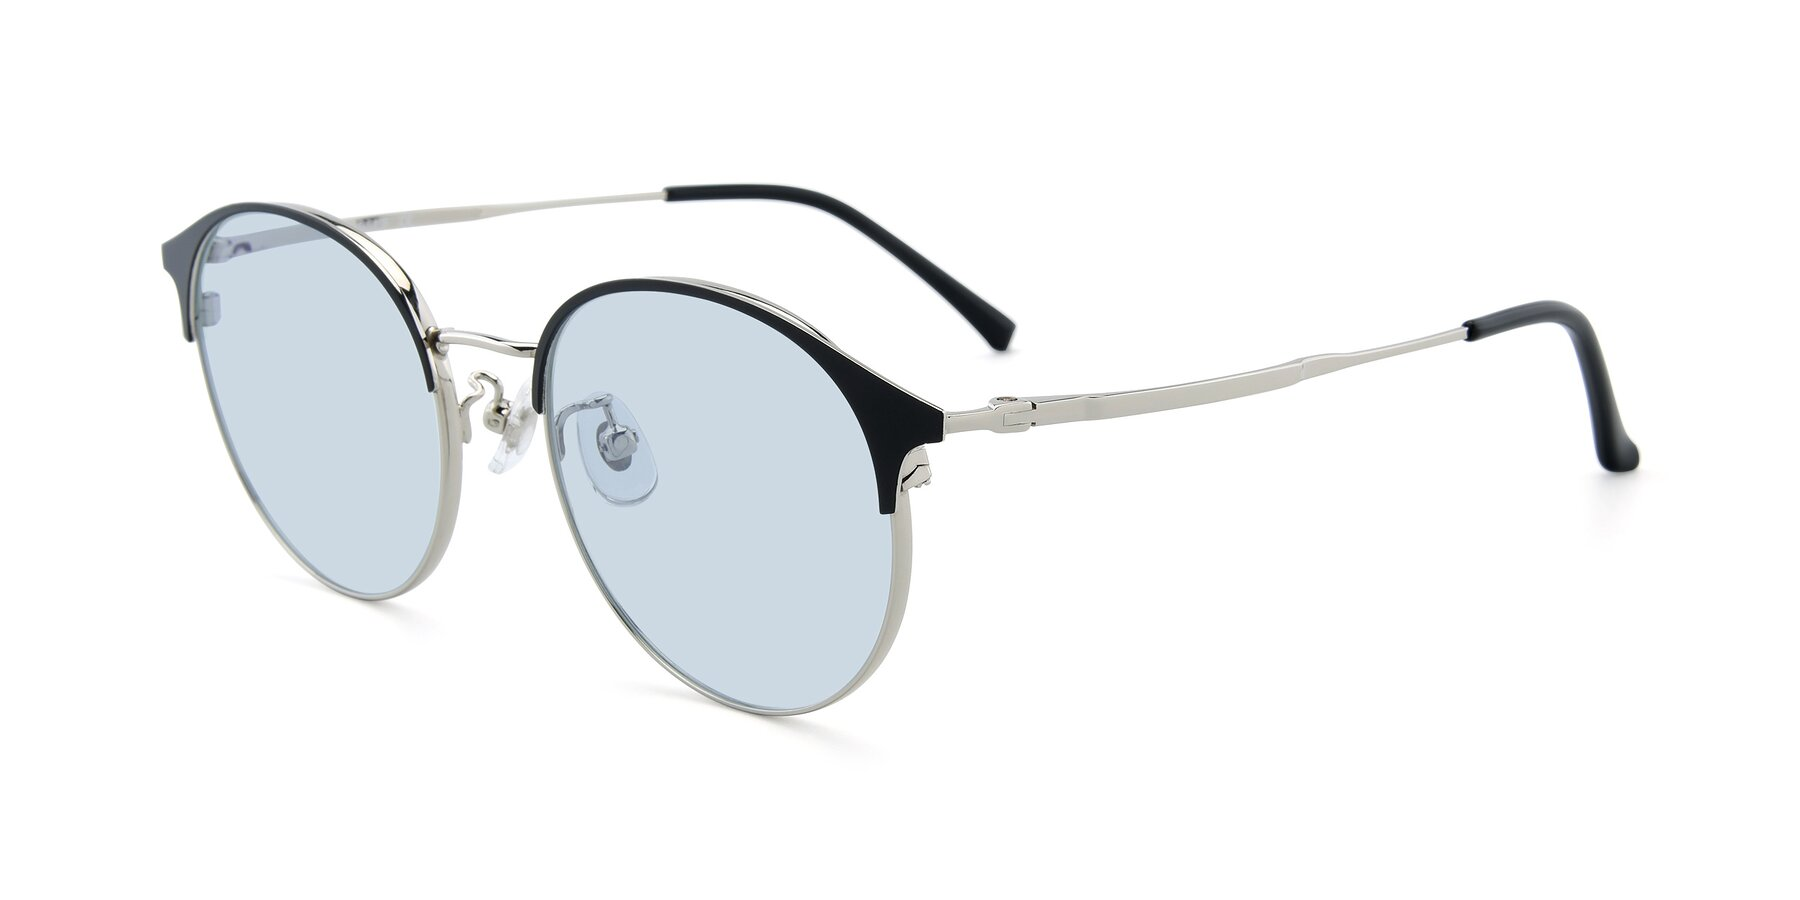 Angle of XC-8031 in Black-Silver with Light Blue Tinted Lenses